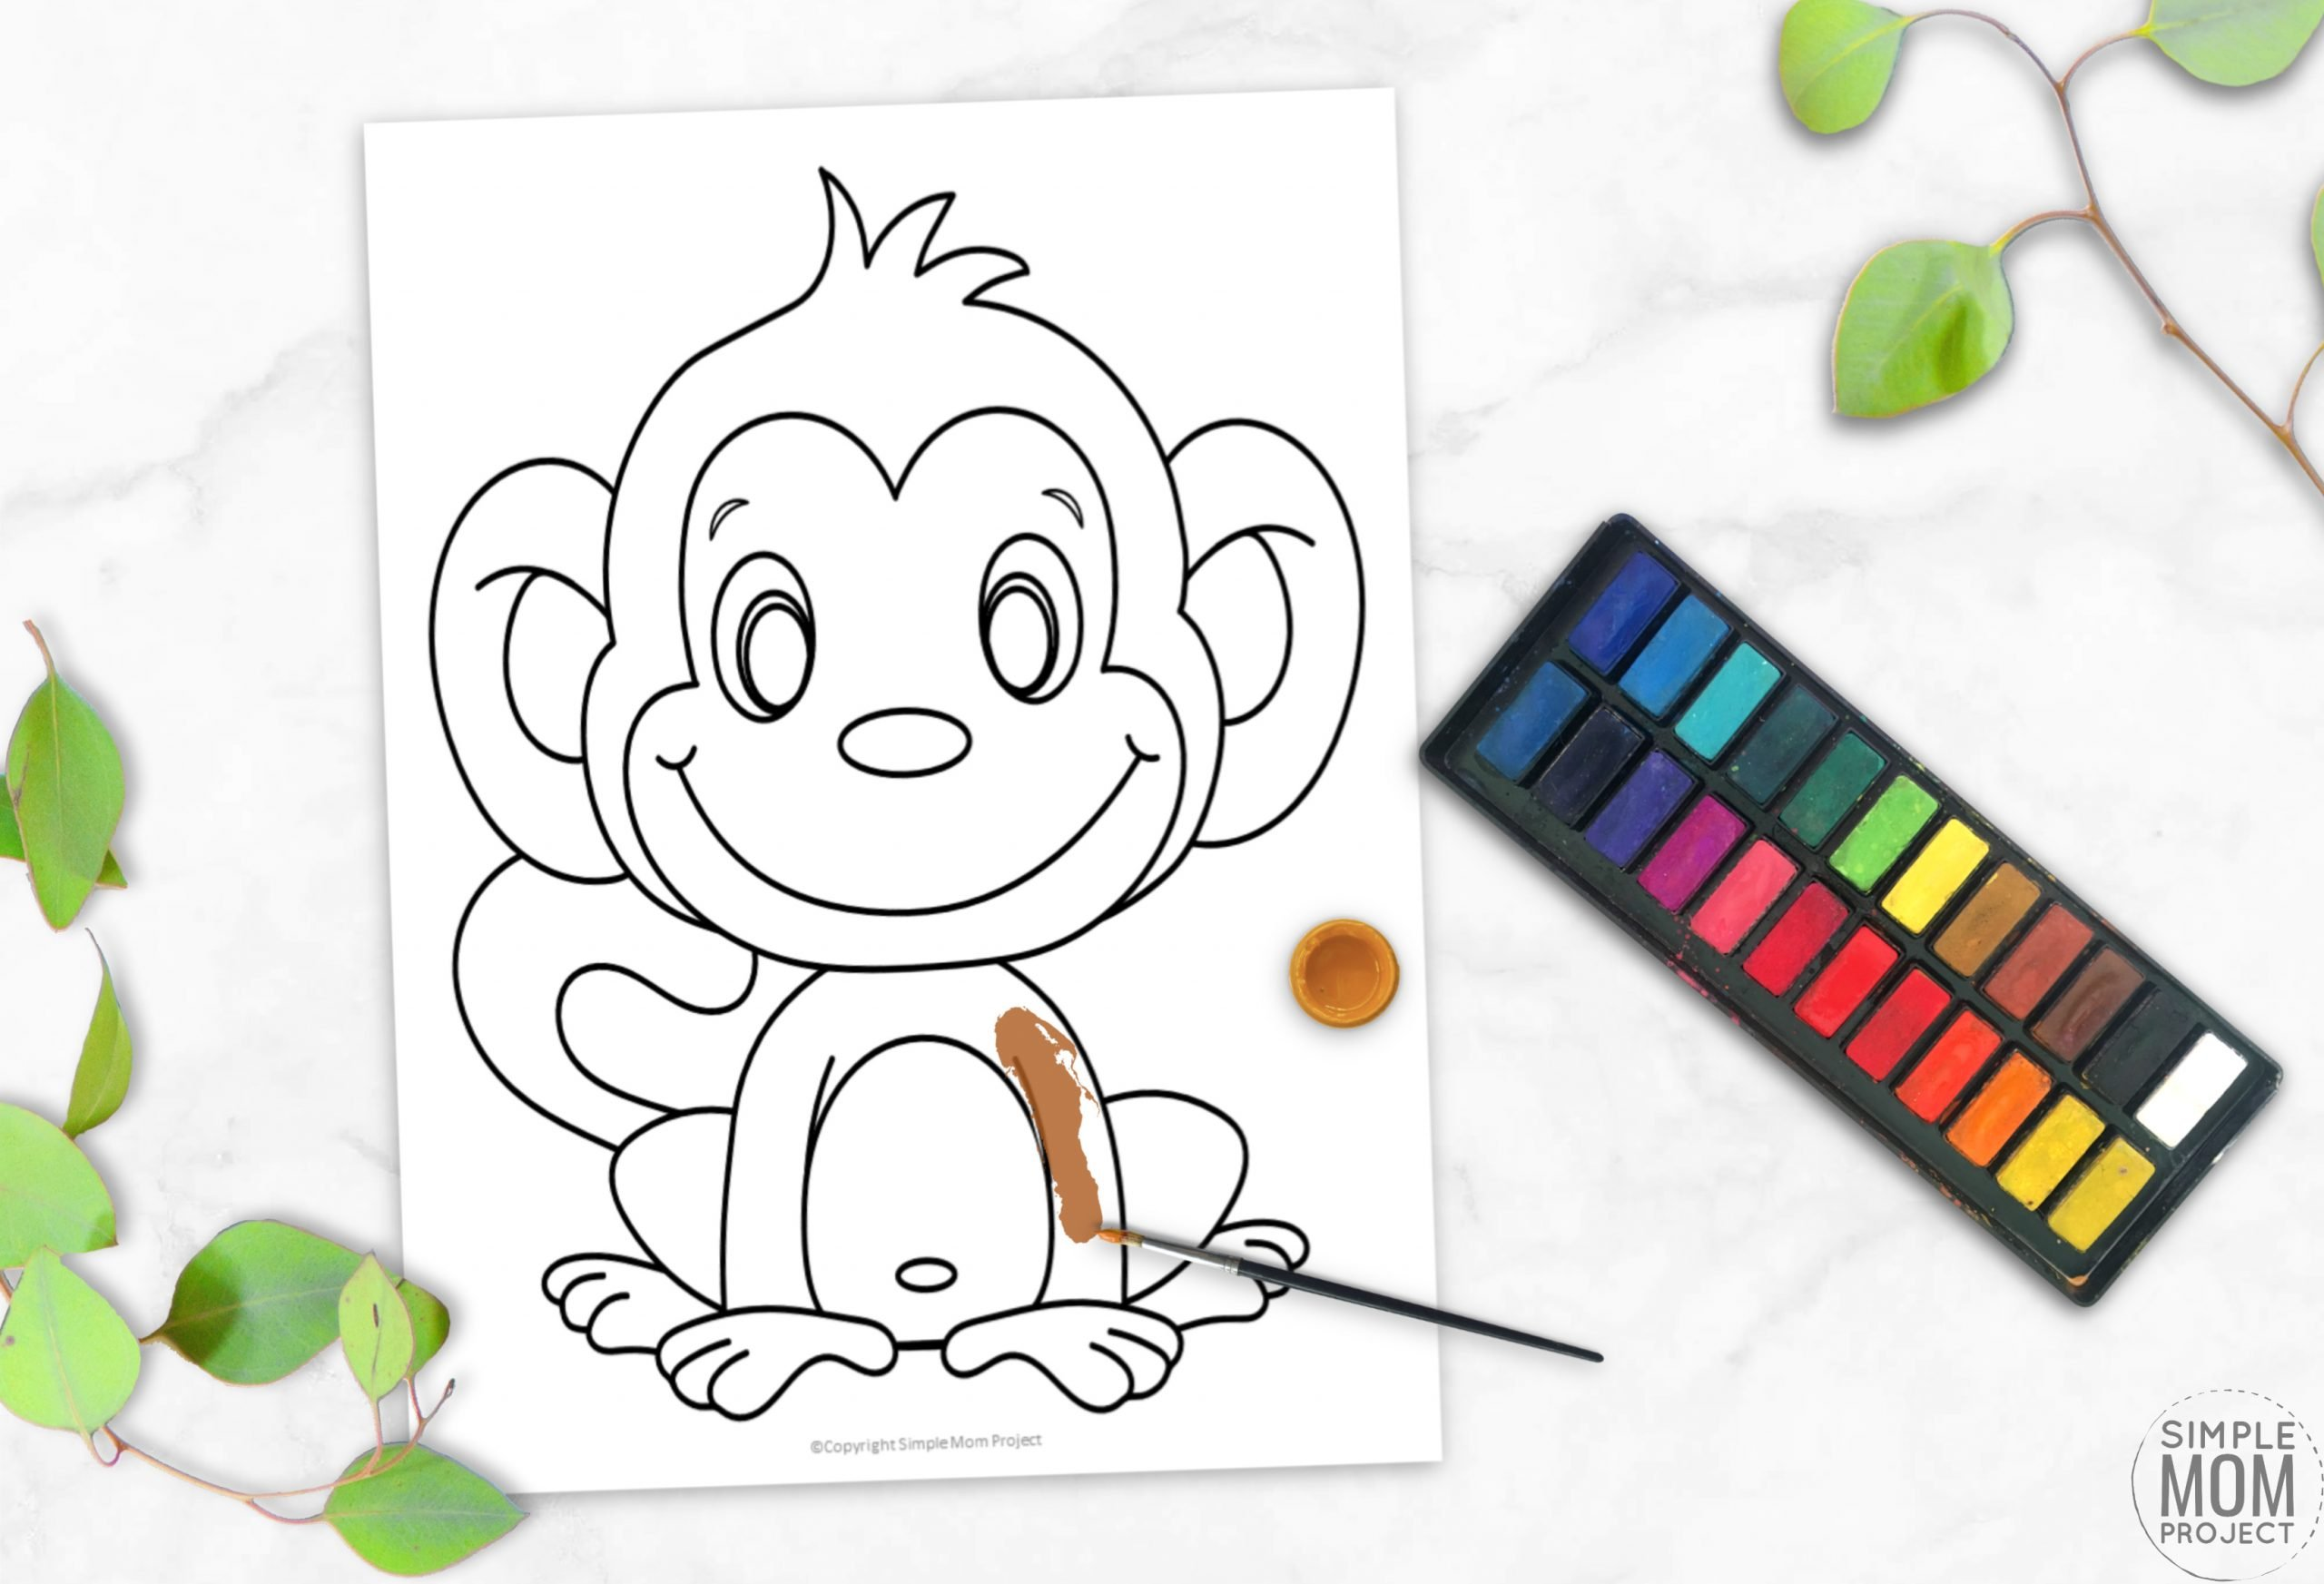 Free Printable Monkey Coloring Page, Coloring sheet for kids, preschoolers and toddlers 3